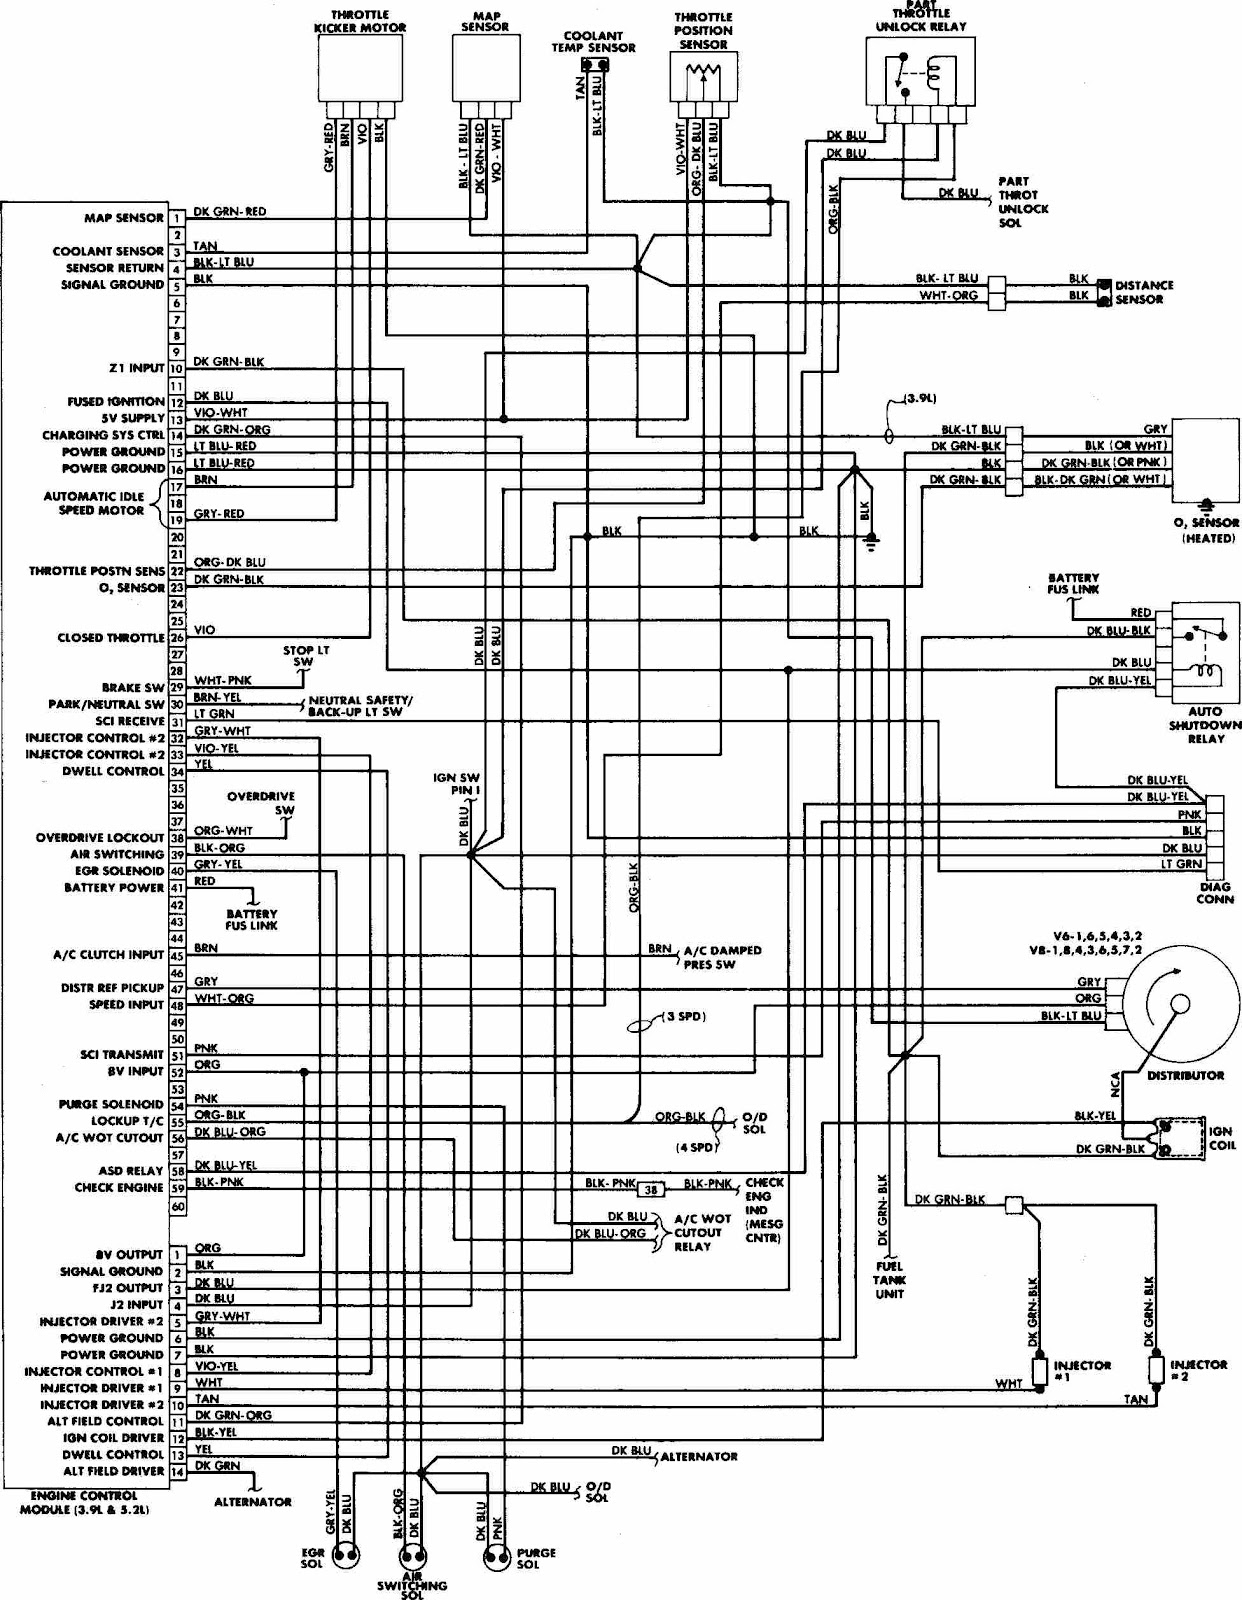 hight resolution of 1960 dodge d100 wiring harness diagram wiring diagram centre1960 dodge pickup wiring diagram free download